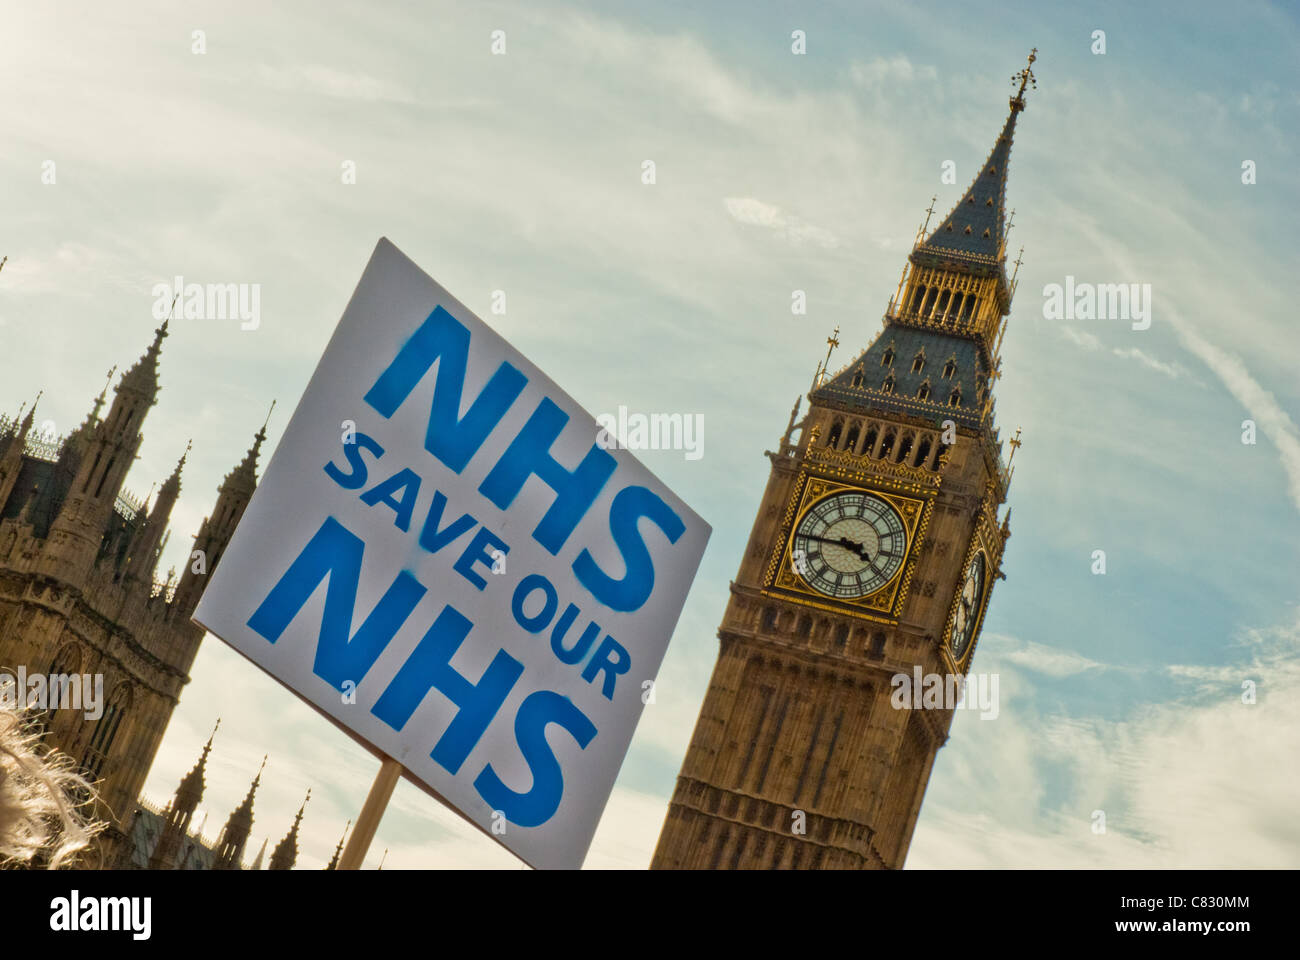 Single placard 'NHS SAVE OUR NHS' against Big Ben both at a jaunty angle. - Stock Image